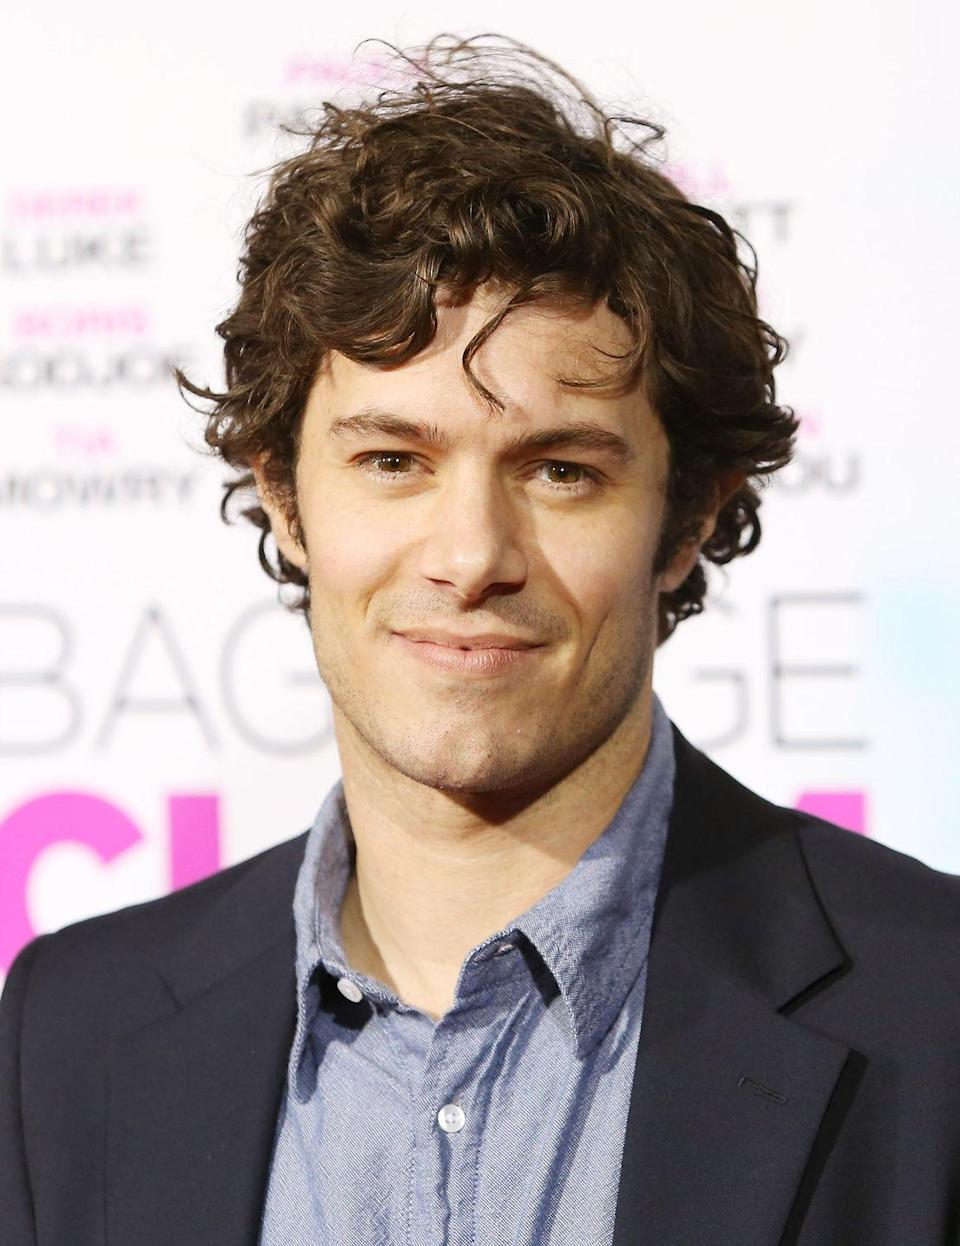 """<p>It's not that Adam Brody hates the character he played on <em>The O.C</em>., it's that he hates talking about him now. (Understandable.) In an interview with the <a href=""""http://www.huffingtonpost.com/2014/11/13/adam-brody-the-oc_n_6154248.html """" rel=""""nofollow noopener"""" target=""""_blank"""" data-ylk=""""slk:Huffington Post"""" class=""""link rapid-noclick-resp""""><em>Huffington Post</em></a>, the actor got candid about why he's kind of annoyed to keep talking about Seth. """"It gets boring, that's all. The only way it bothers me—it's not that I'm not proud of it—it's that I've exhausted the conversations about it, in my mind,"""" Brody said. """"Forgive me for comparing myself in any way—and I'm not—but Harrison Ford, I understand why he would be crotchety talking about <em>Star Wars</em>.""""</p>"""